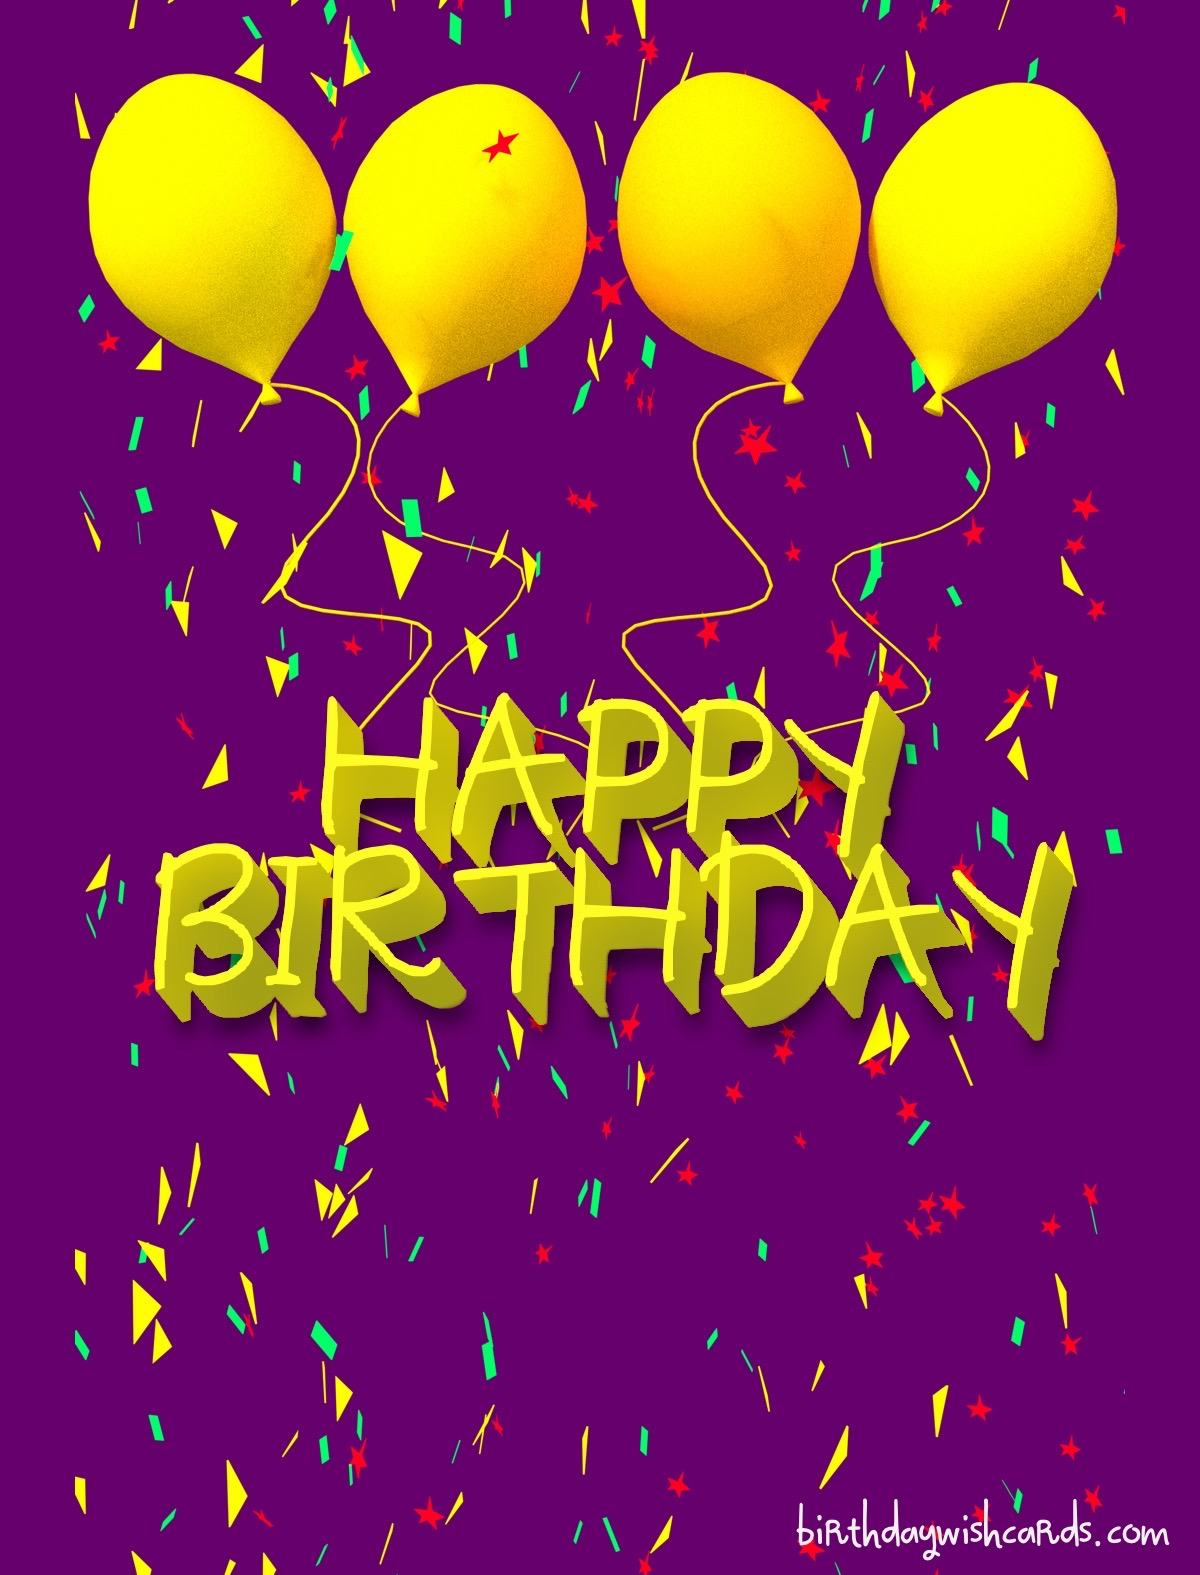 Stupendous Happy Birthday E Card For Someone Special Birthday Wish Cards Funny Birthday Cards Online Barepcheapnameinfo